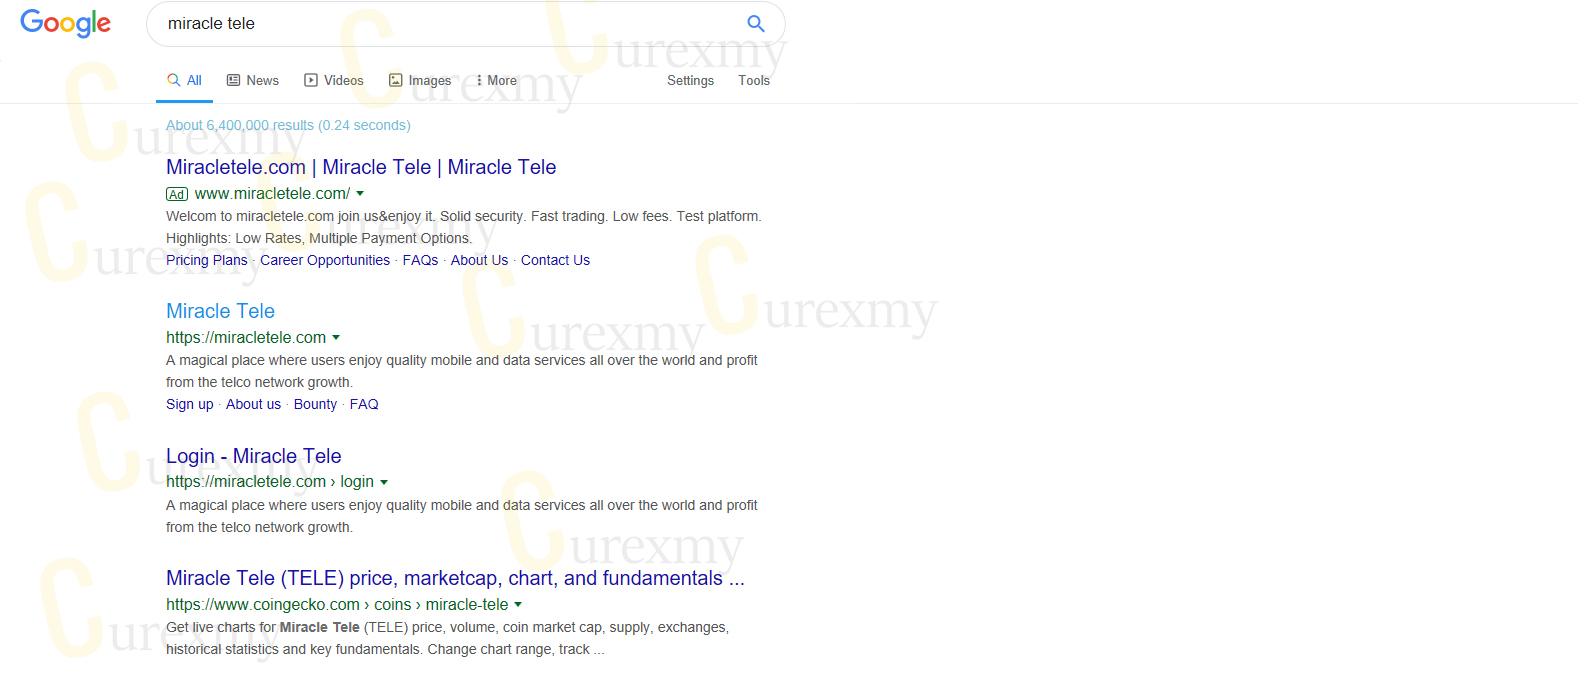 miracle-tele-ad-running-on-google-searches